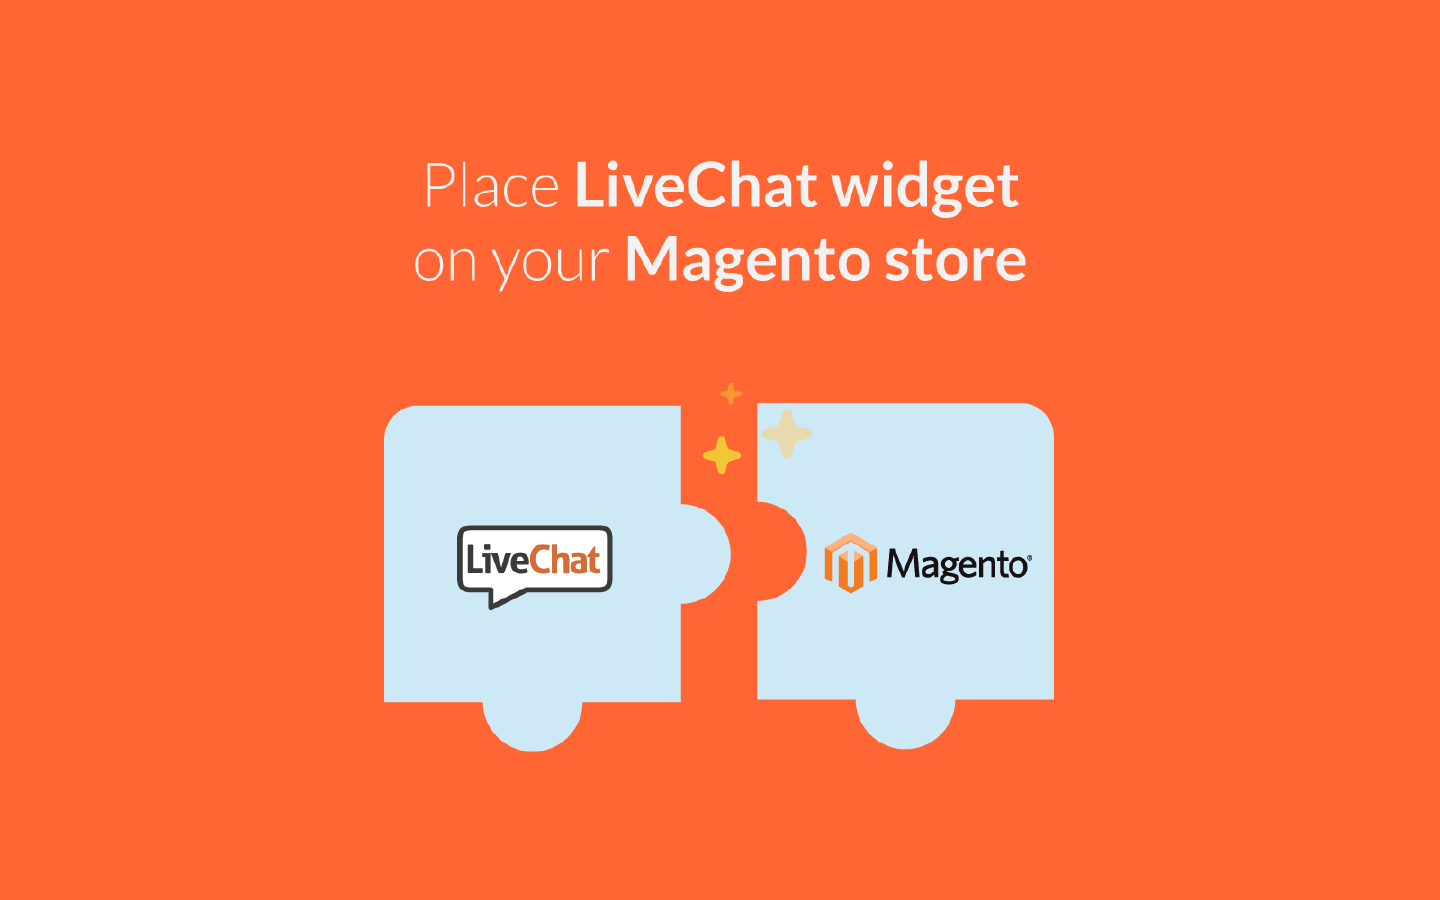 LiveChat integrates with Magento